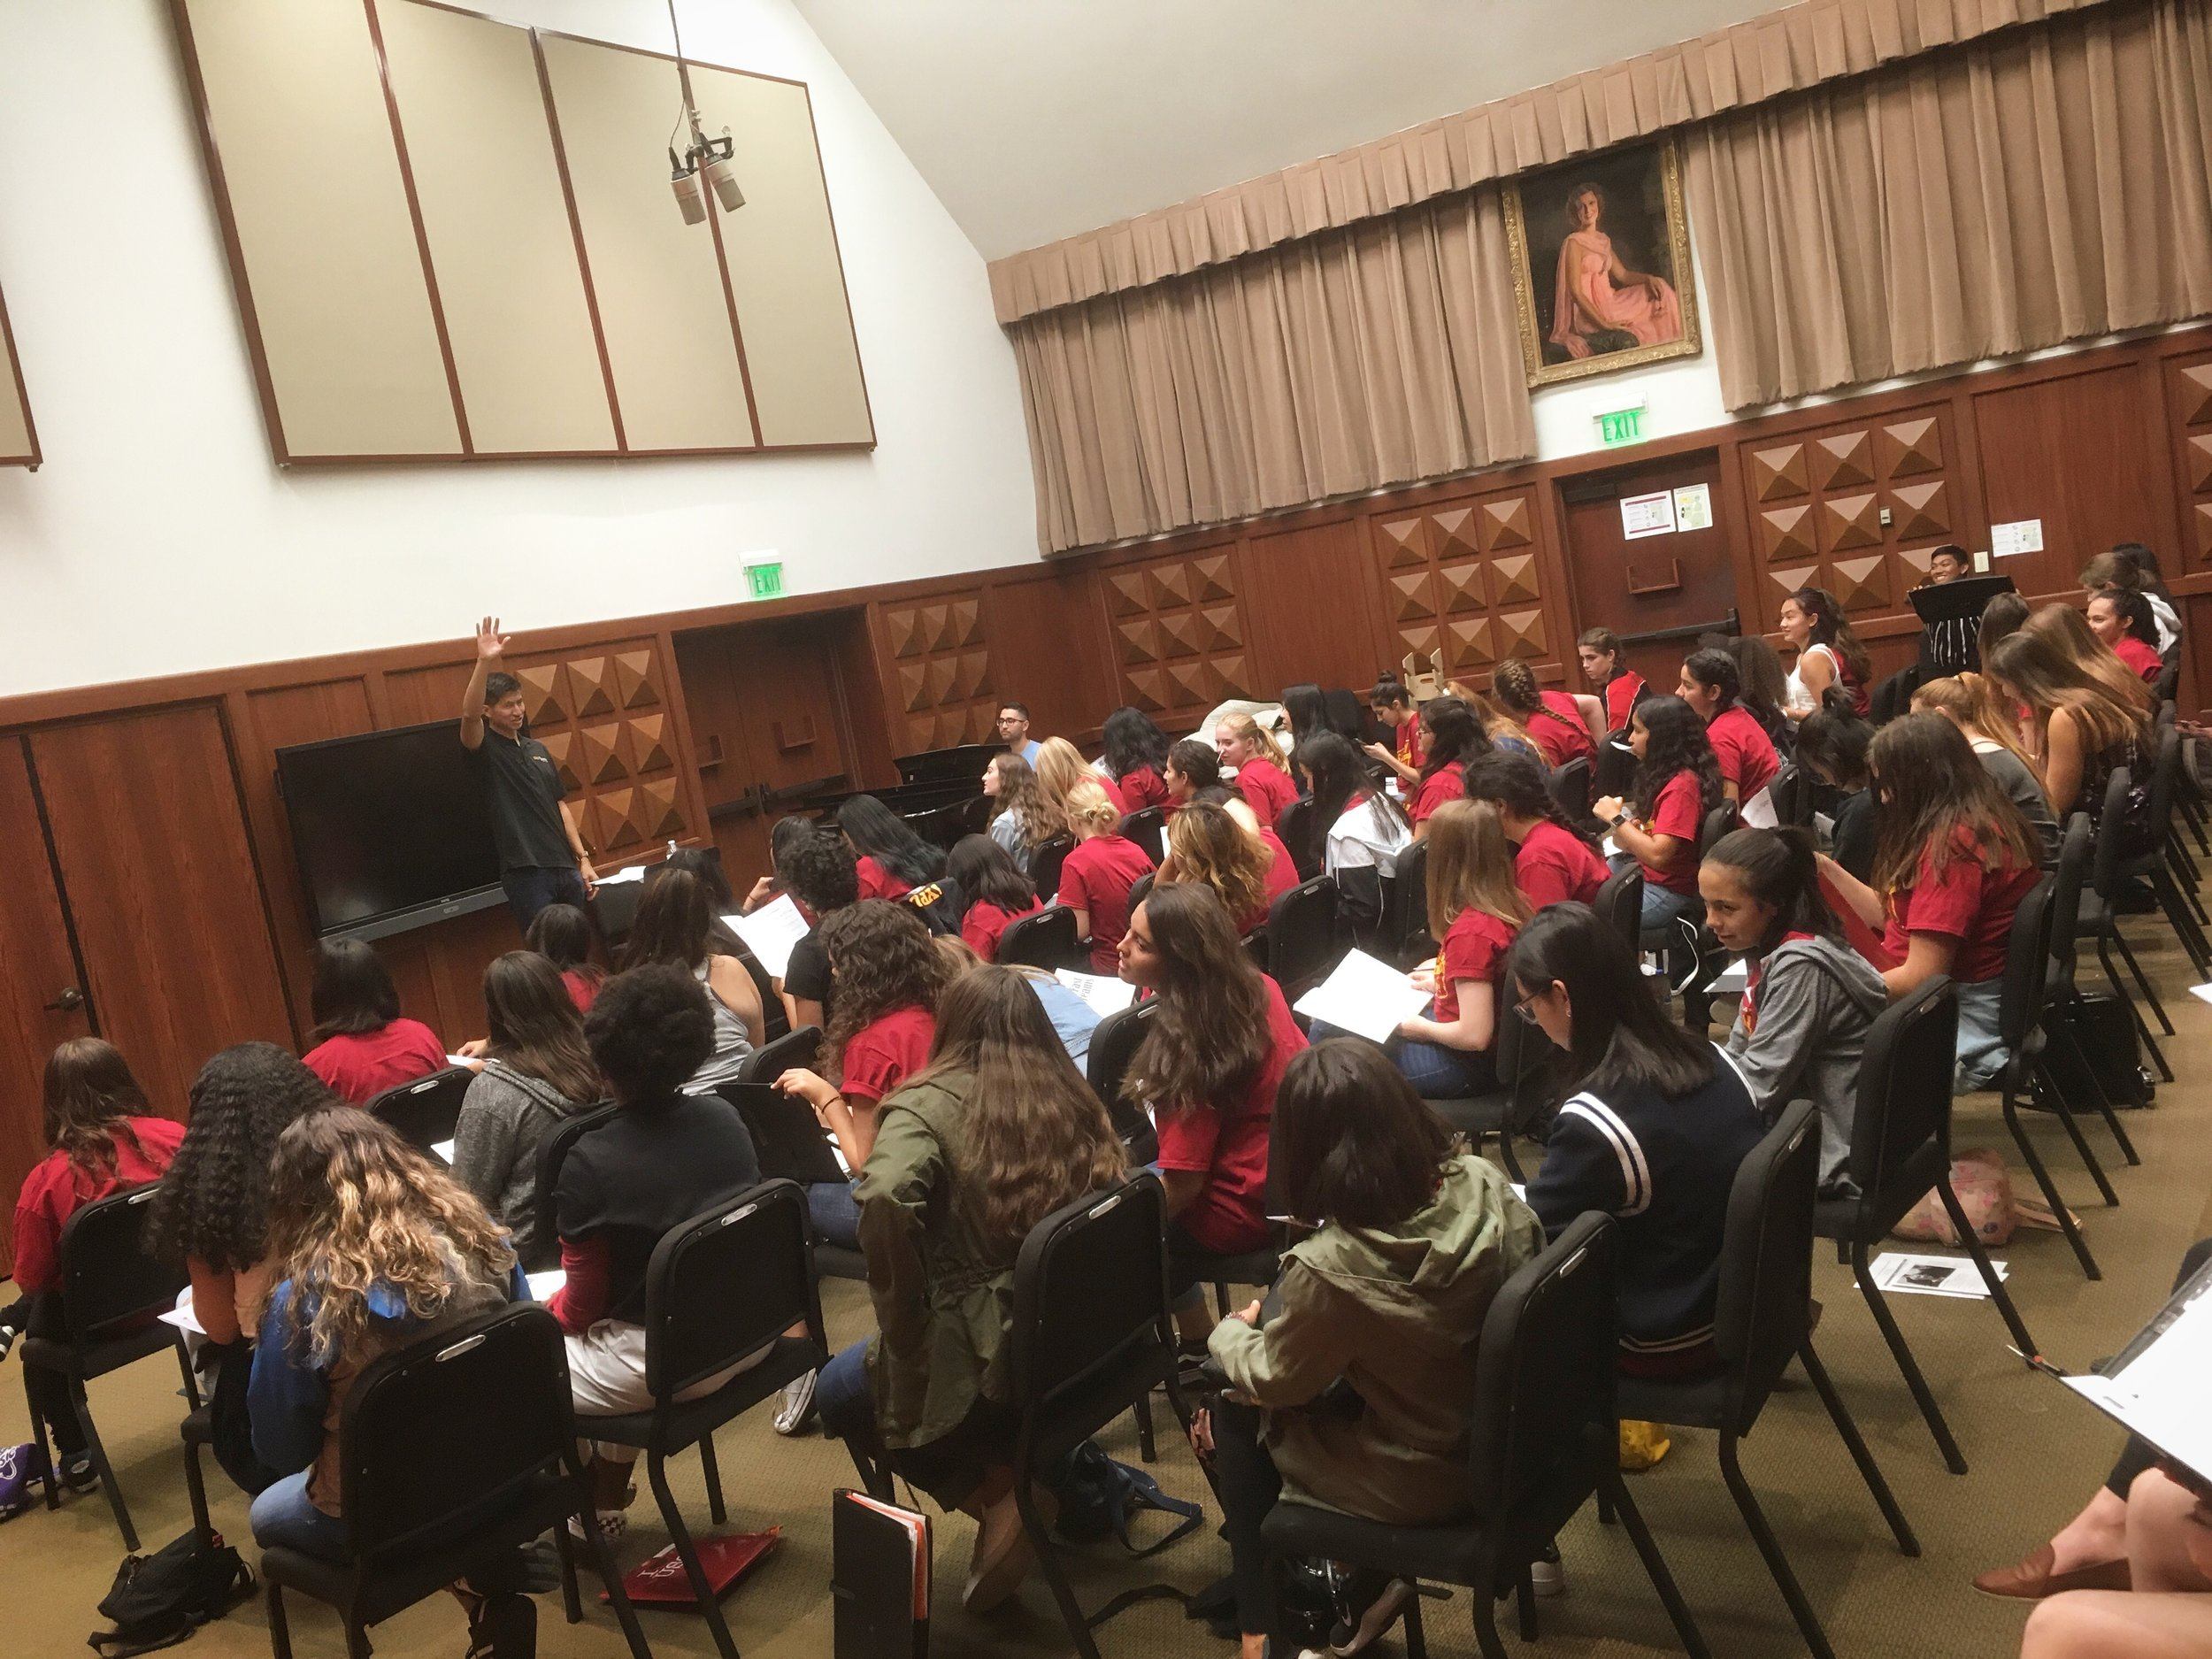 Daniel leads high school choir sectional for USC's annual Choral Leadership Festival